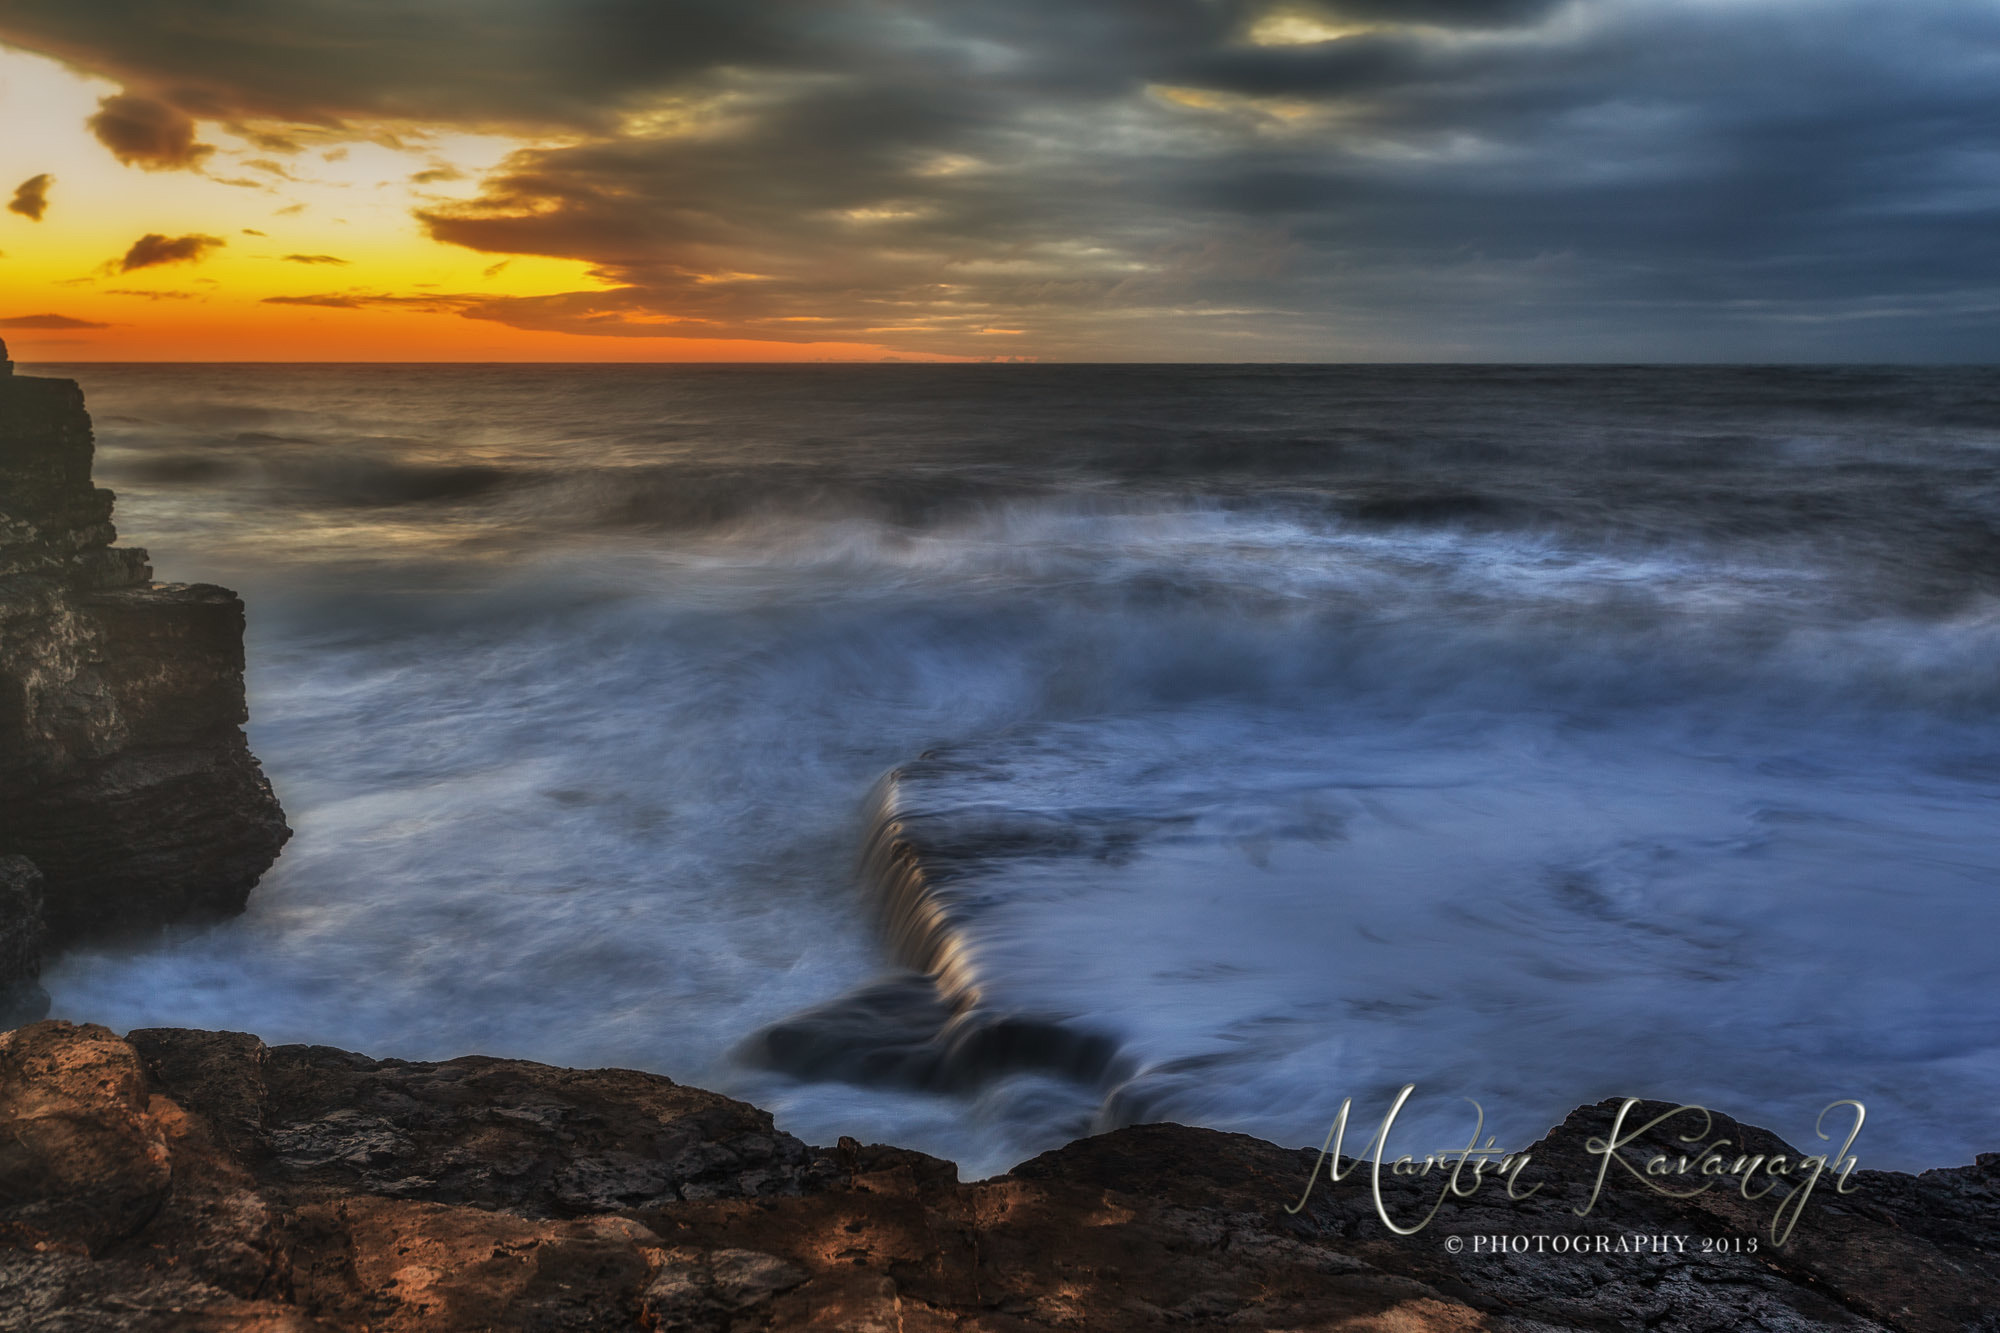 Photograph Stormy Sea... by Martin Kavanagh on 500px